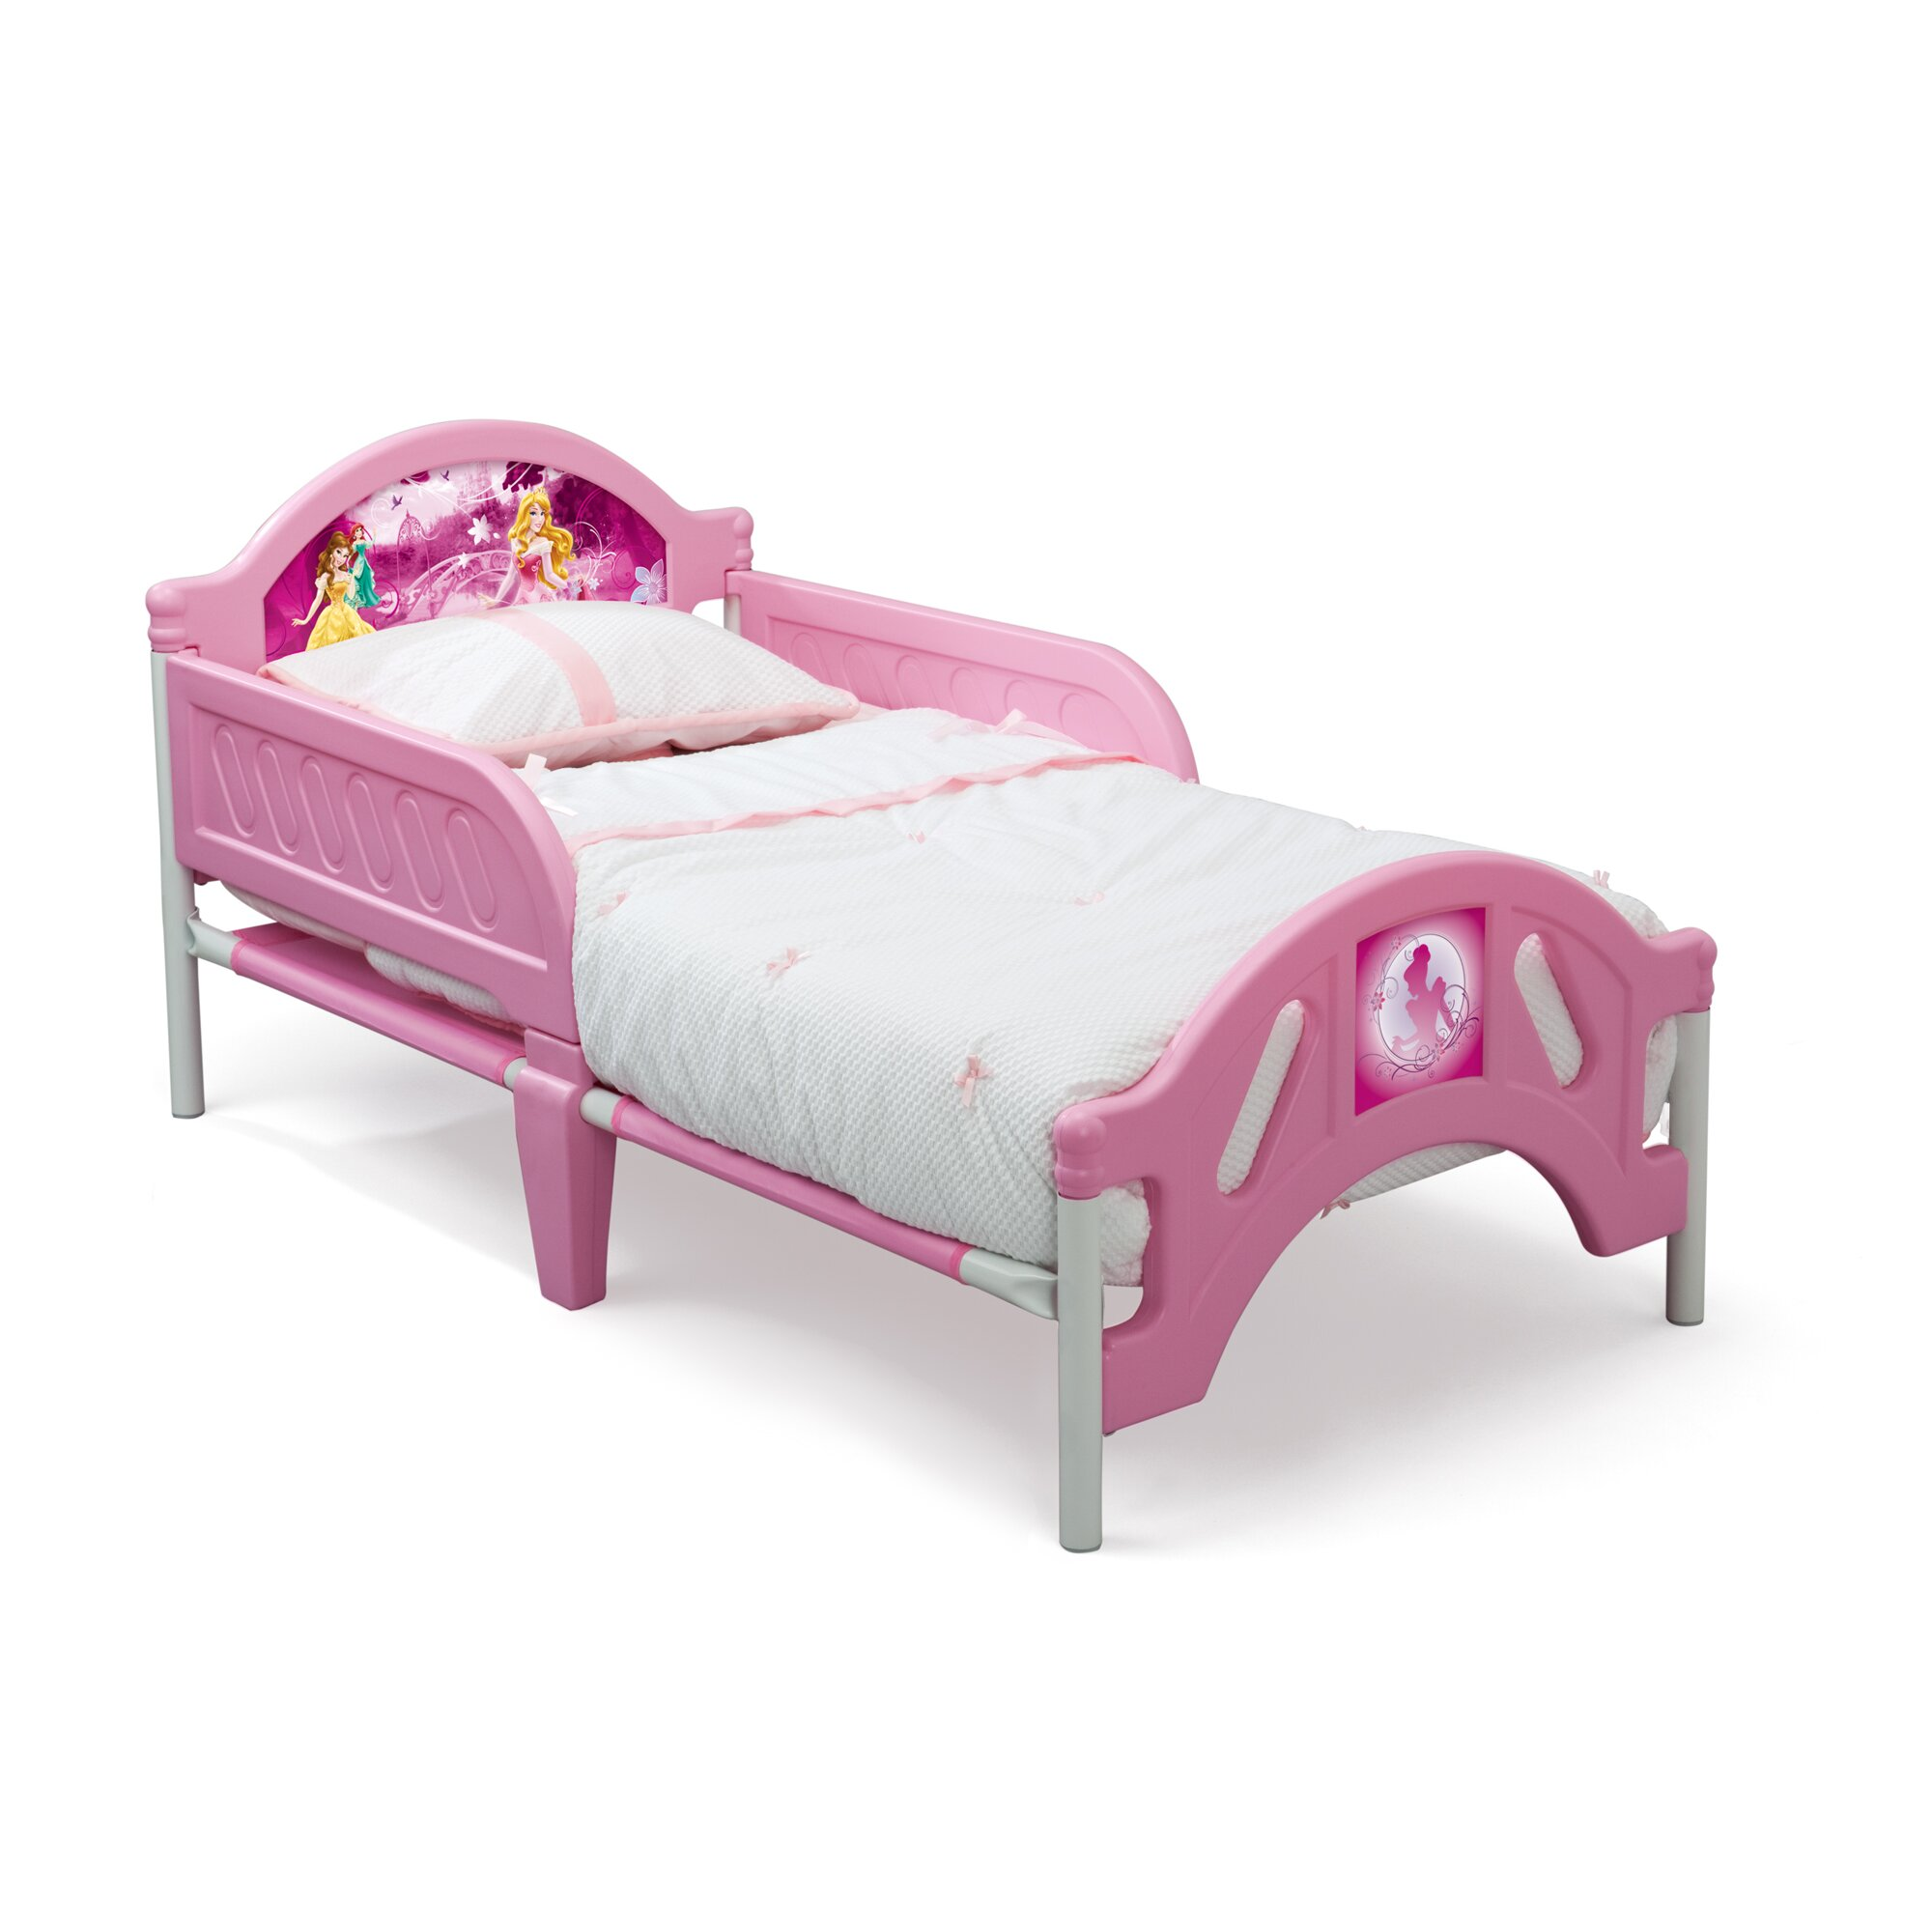 Delta Children Disney Princess Convertible Toddler Bed